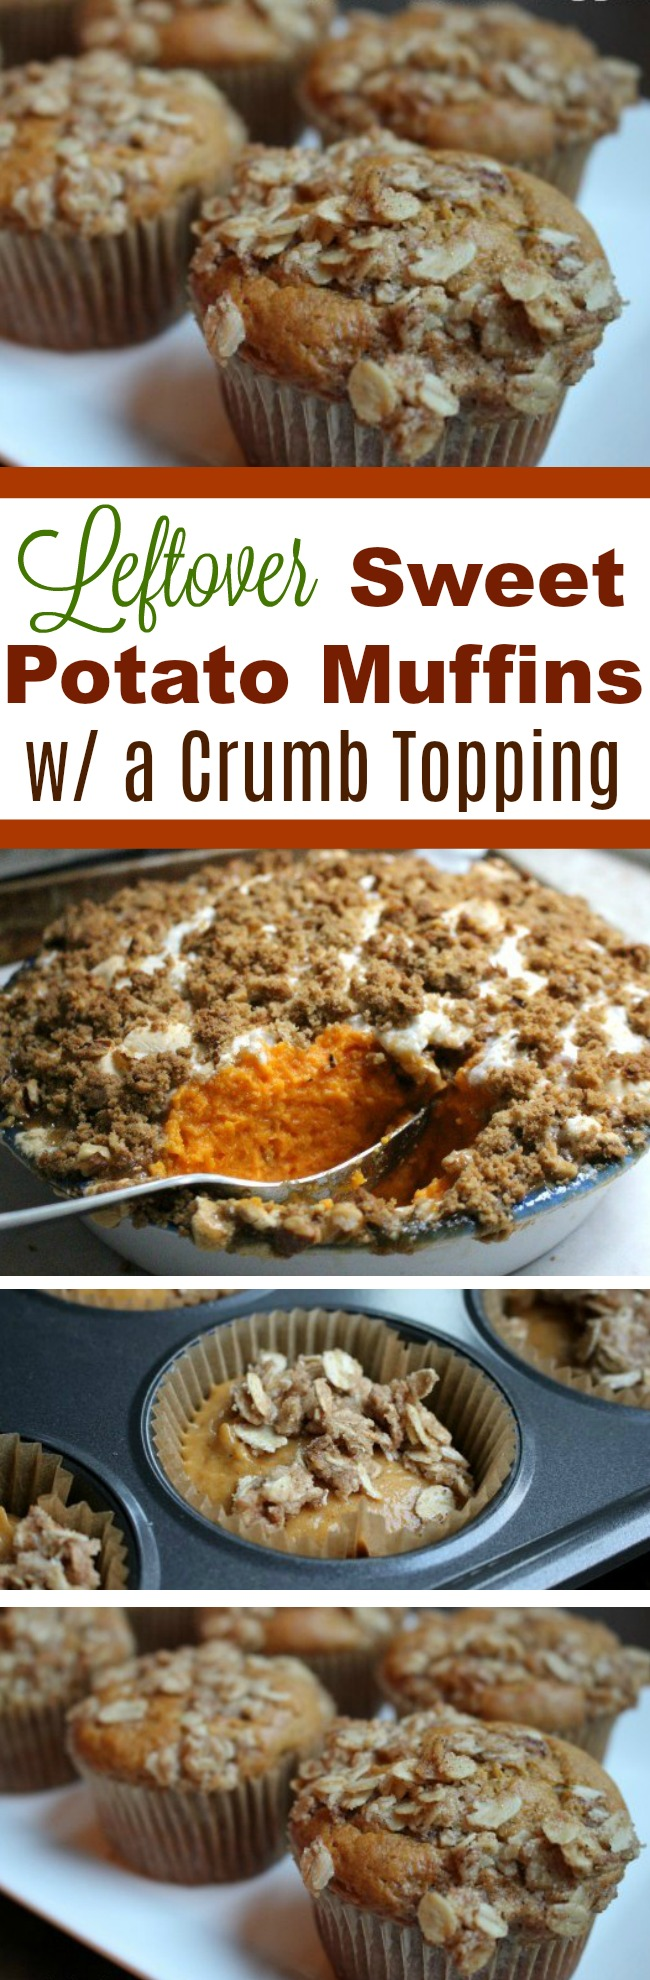 Thanksgiving Leftovers – Sweet Potato Muffins with Crumb Topping